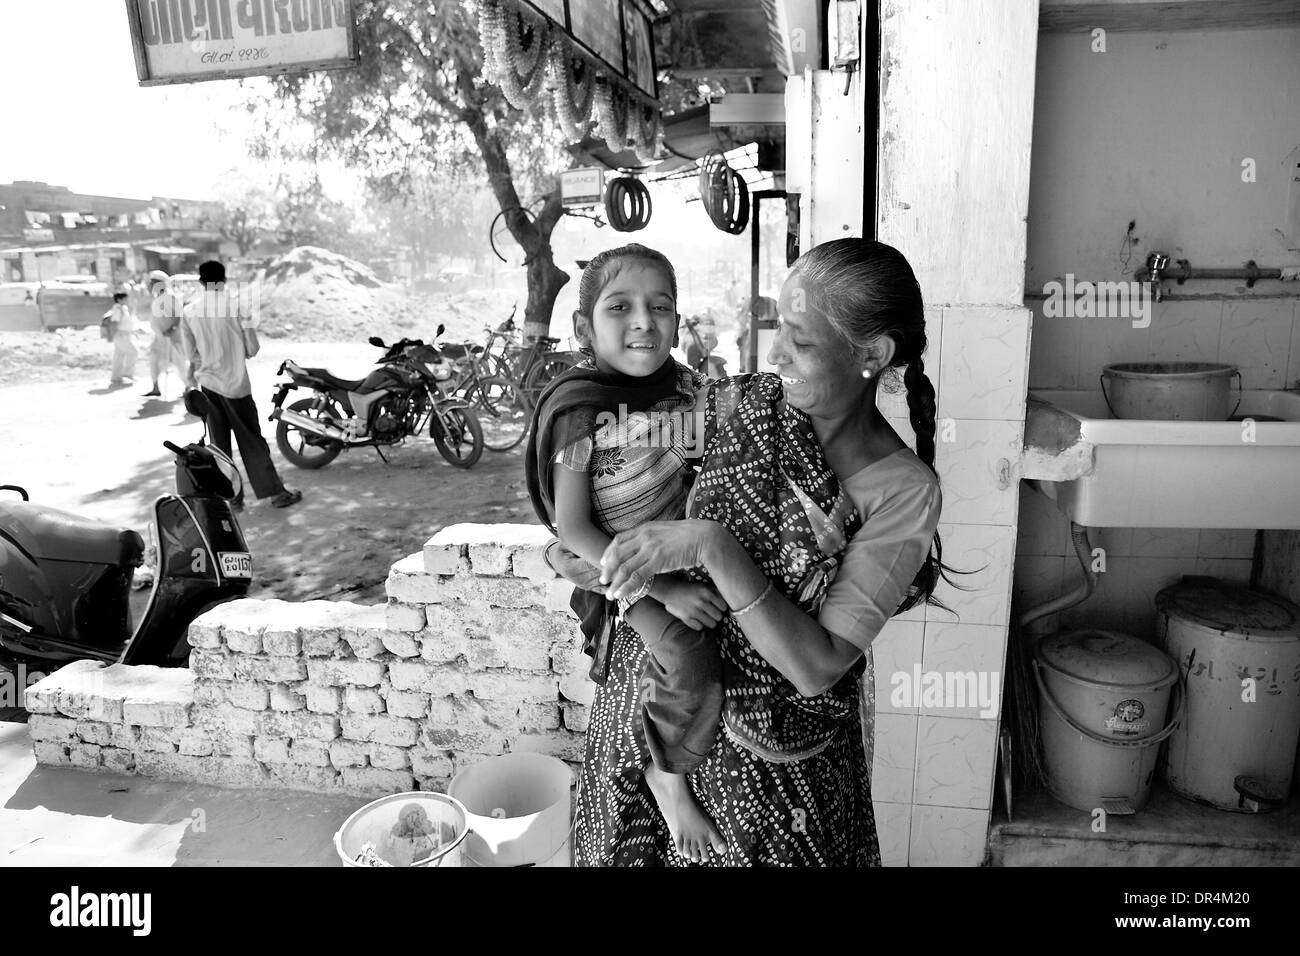 Jan 24, 2009 - DOTS centre,Ahmedabad, Gujarat, India - SANGITABEN SHREEMALI brings her granddaughter MUNNI SHREEMALI at the DOTS centre at Ahmedabad for her dose of TB medicines. Munni suffers from extra pulmonary TB and is on CAT III regime. TB has affected her spinal cord and consequently it has started affecting her eyes as well. (Credit Image: © Subhash Sharma/ZUMA Press) - Stock Image